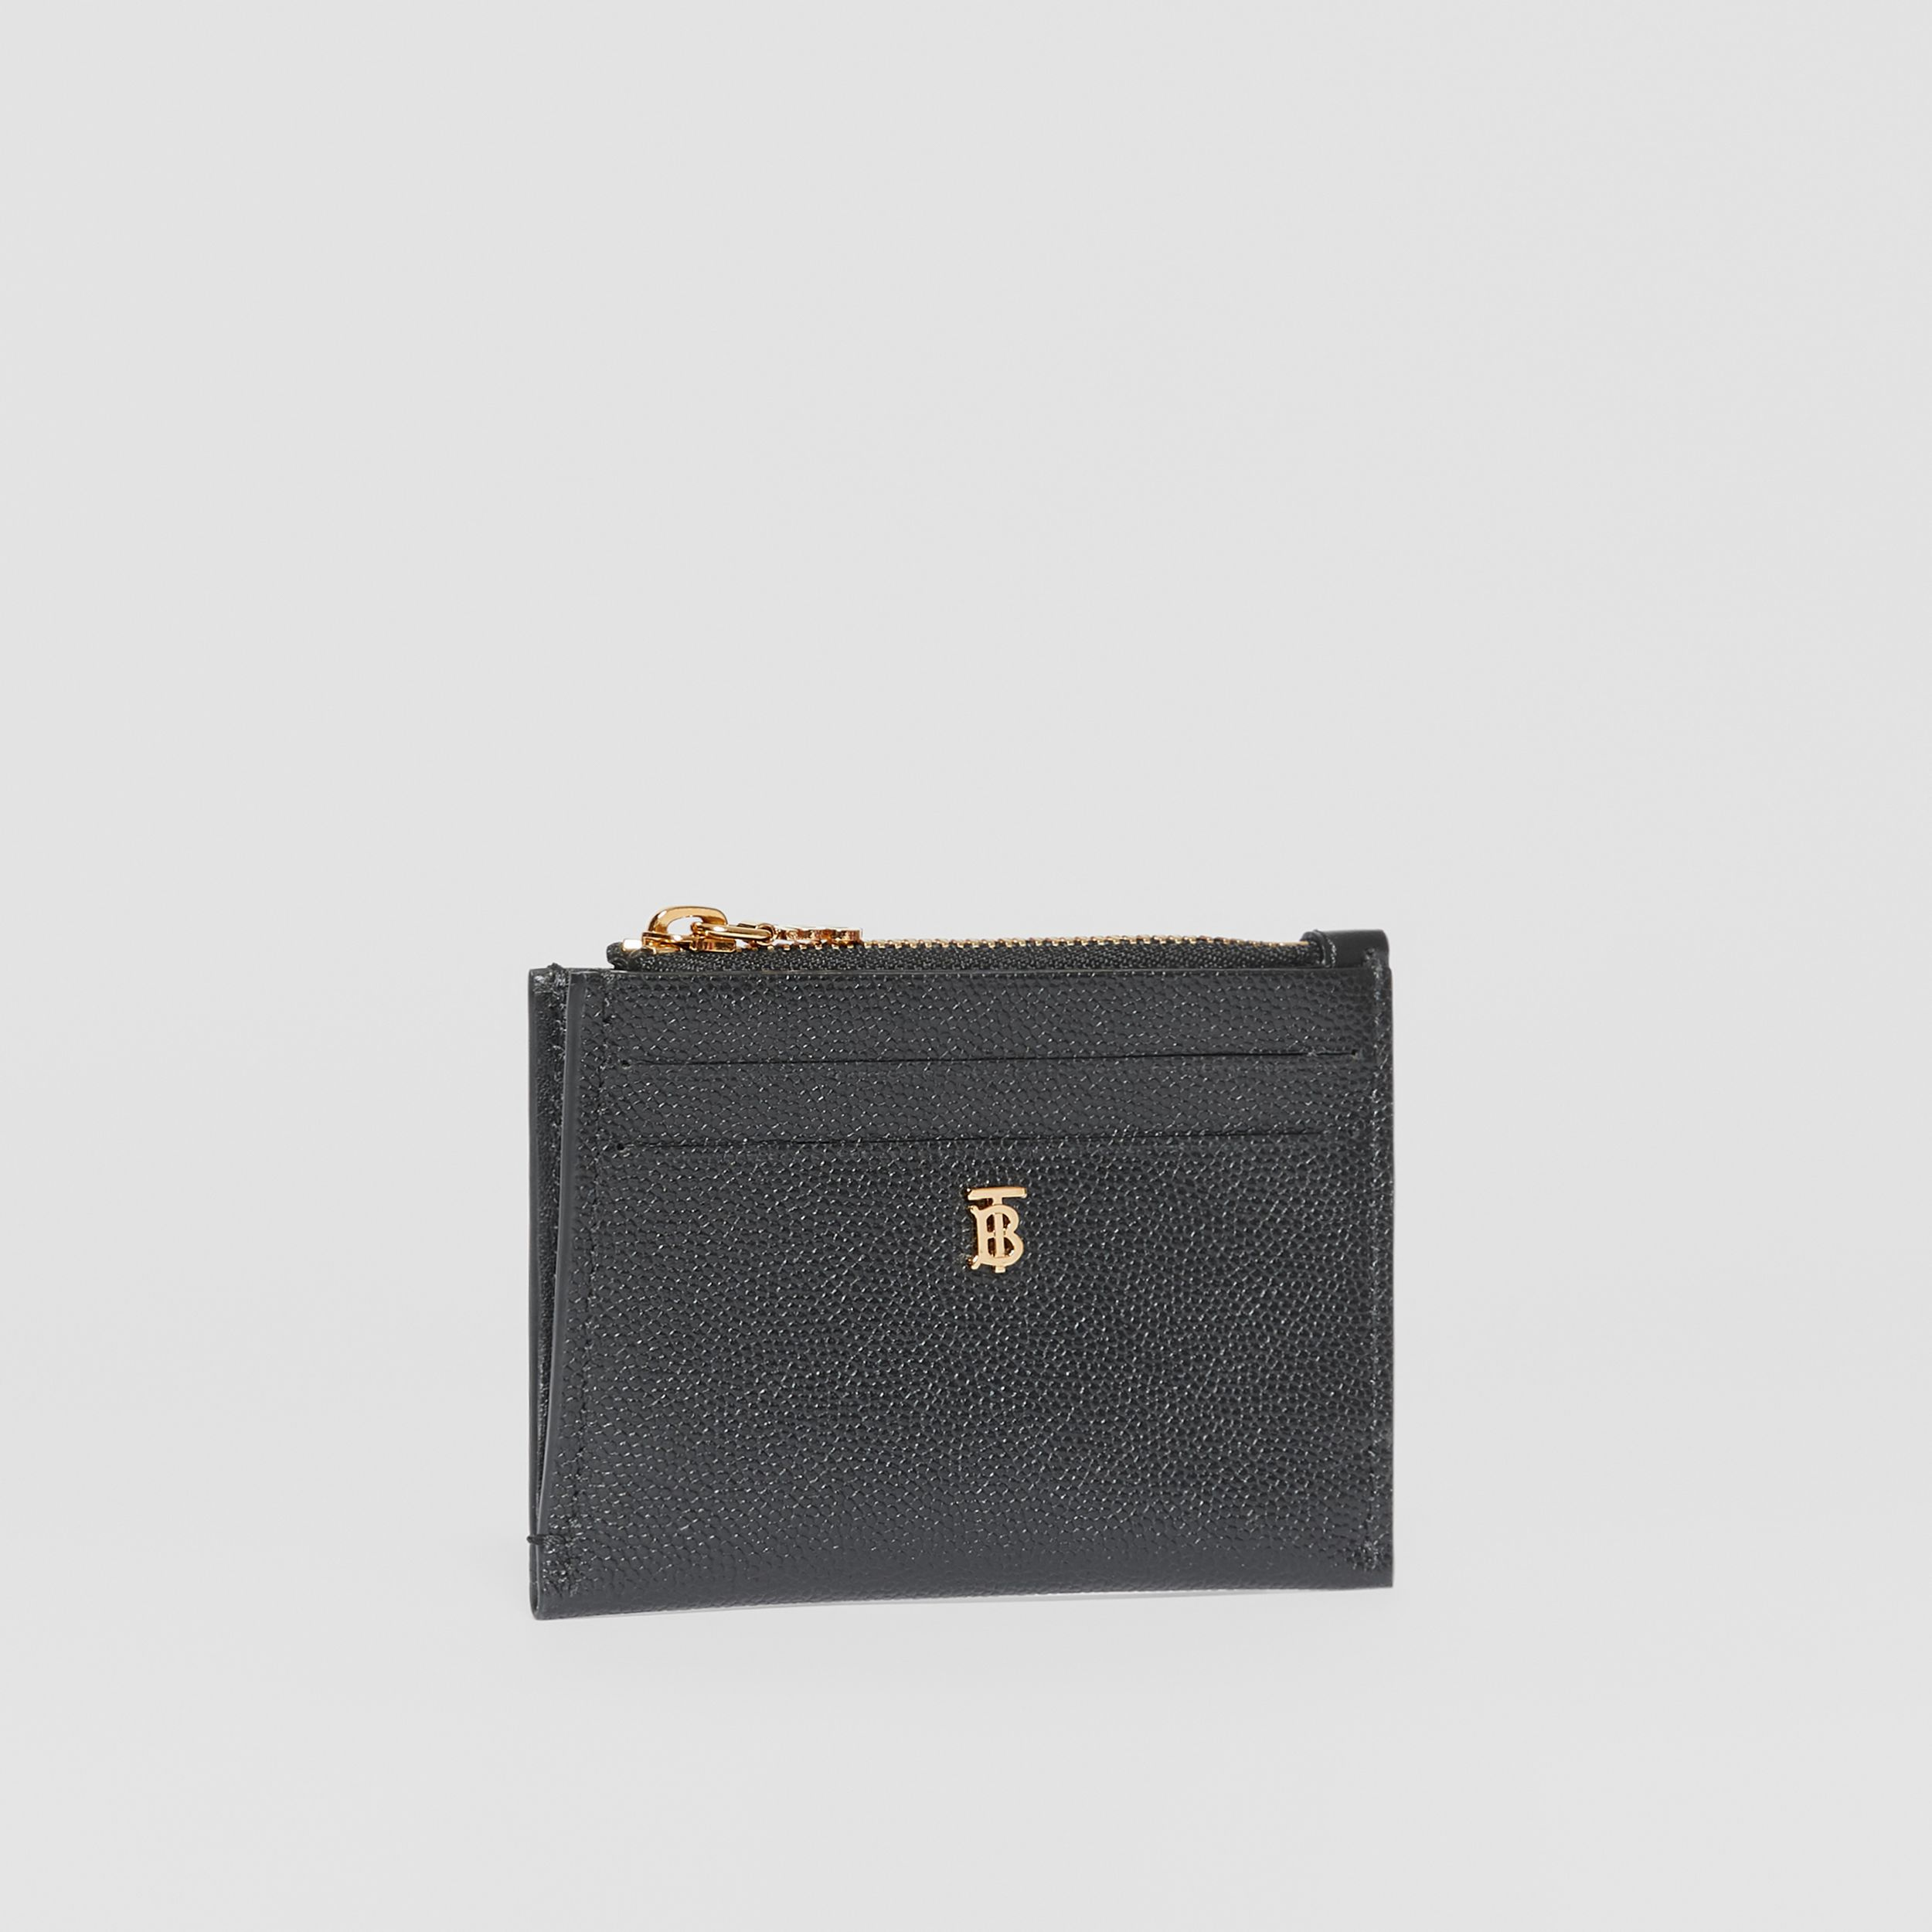 Monogram Motif Grainy Leather Zip Card Case in Black - Women | Burberry - 4